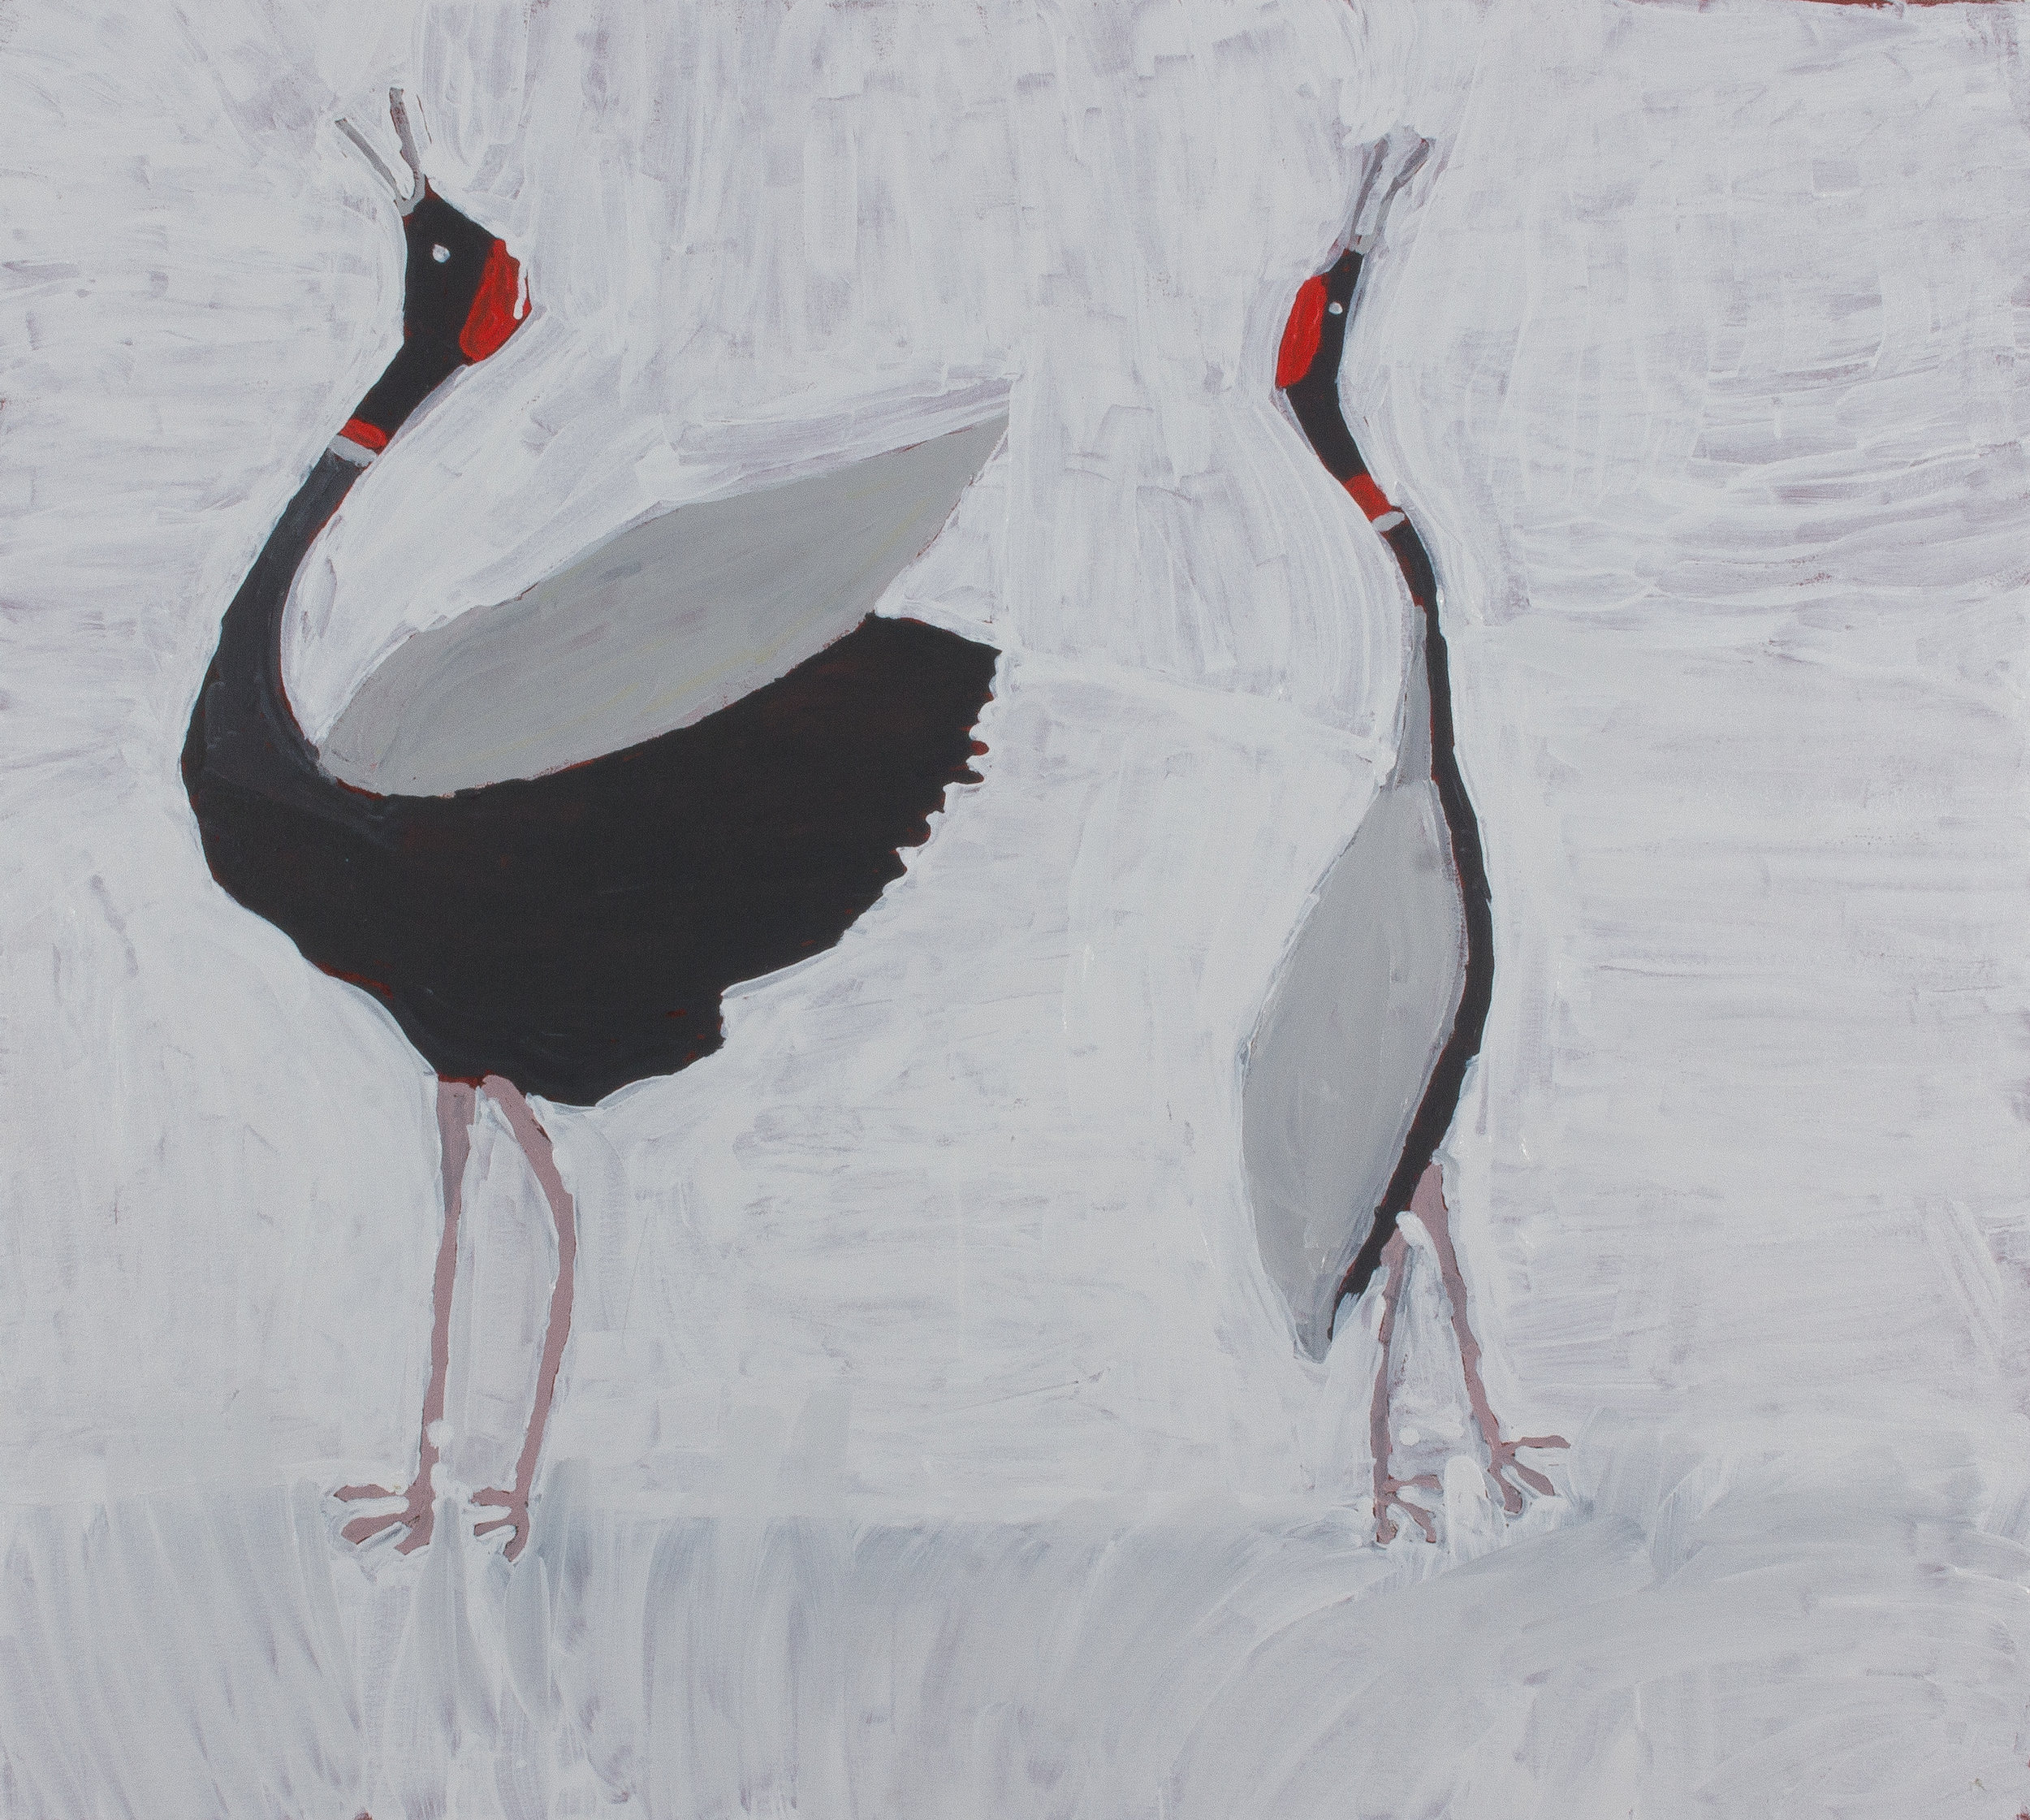 "Nyangulya Katie Nalgood  Brolga's Dancing  36 x 36"" (91.5 x 91.5 cm) acrylic on linen Spinifex Hills Artists Catalog #18-177  SOLD"